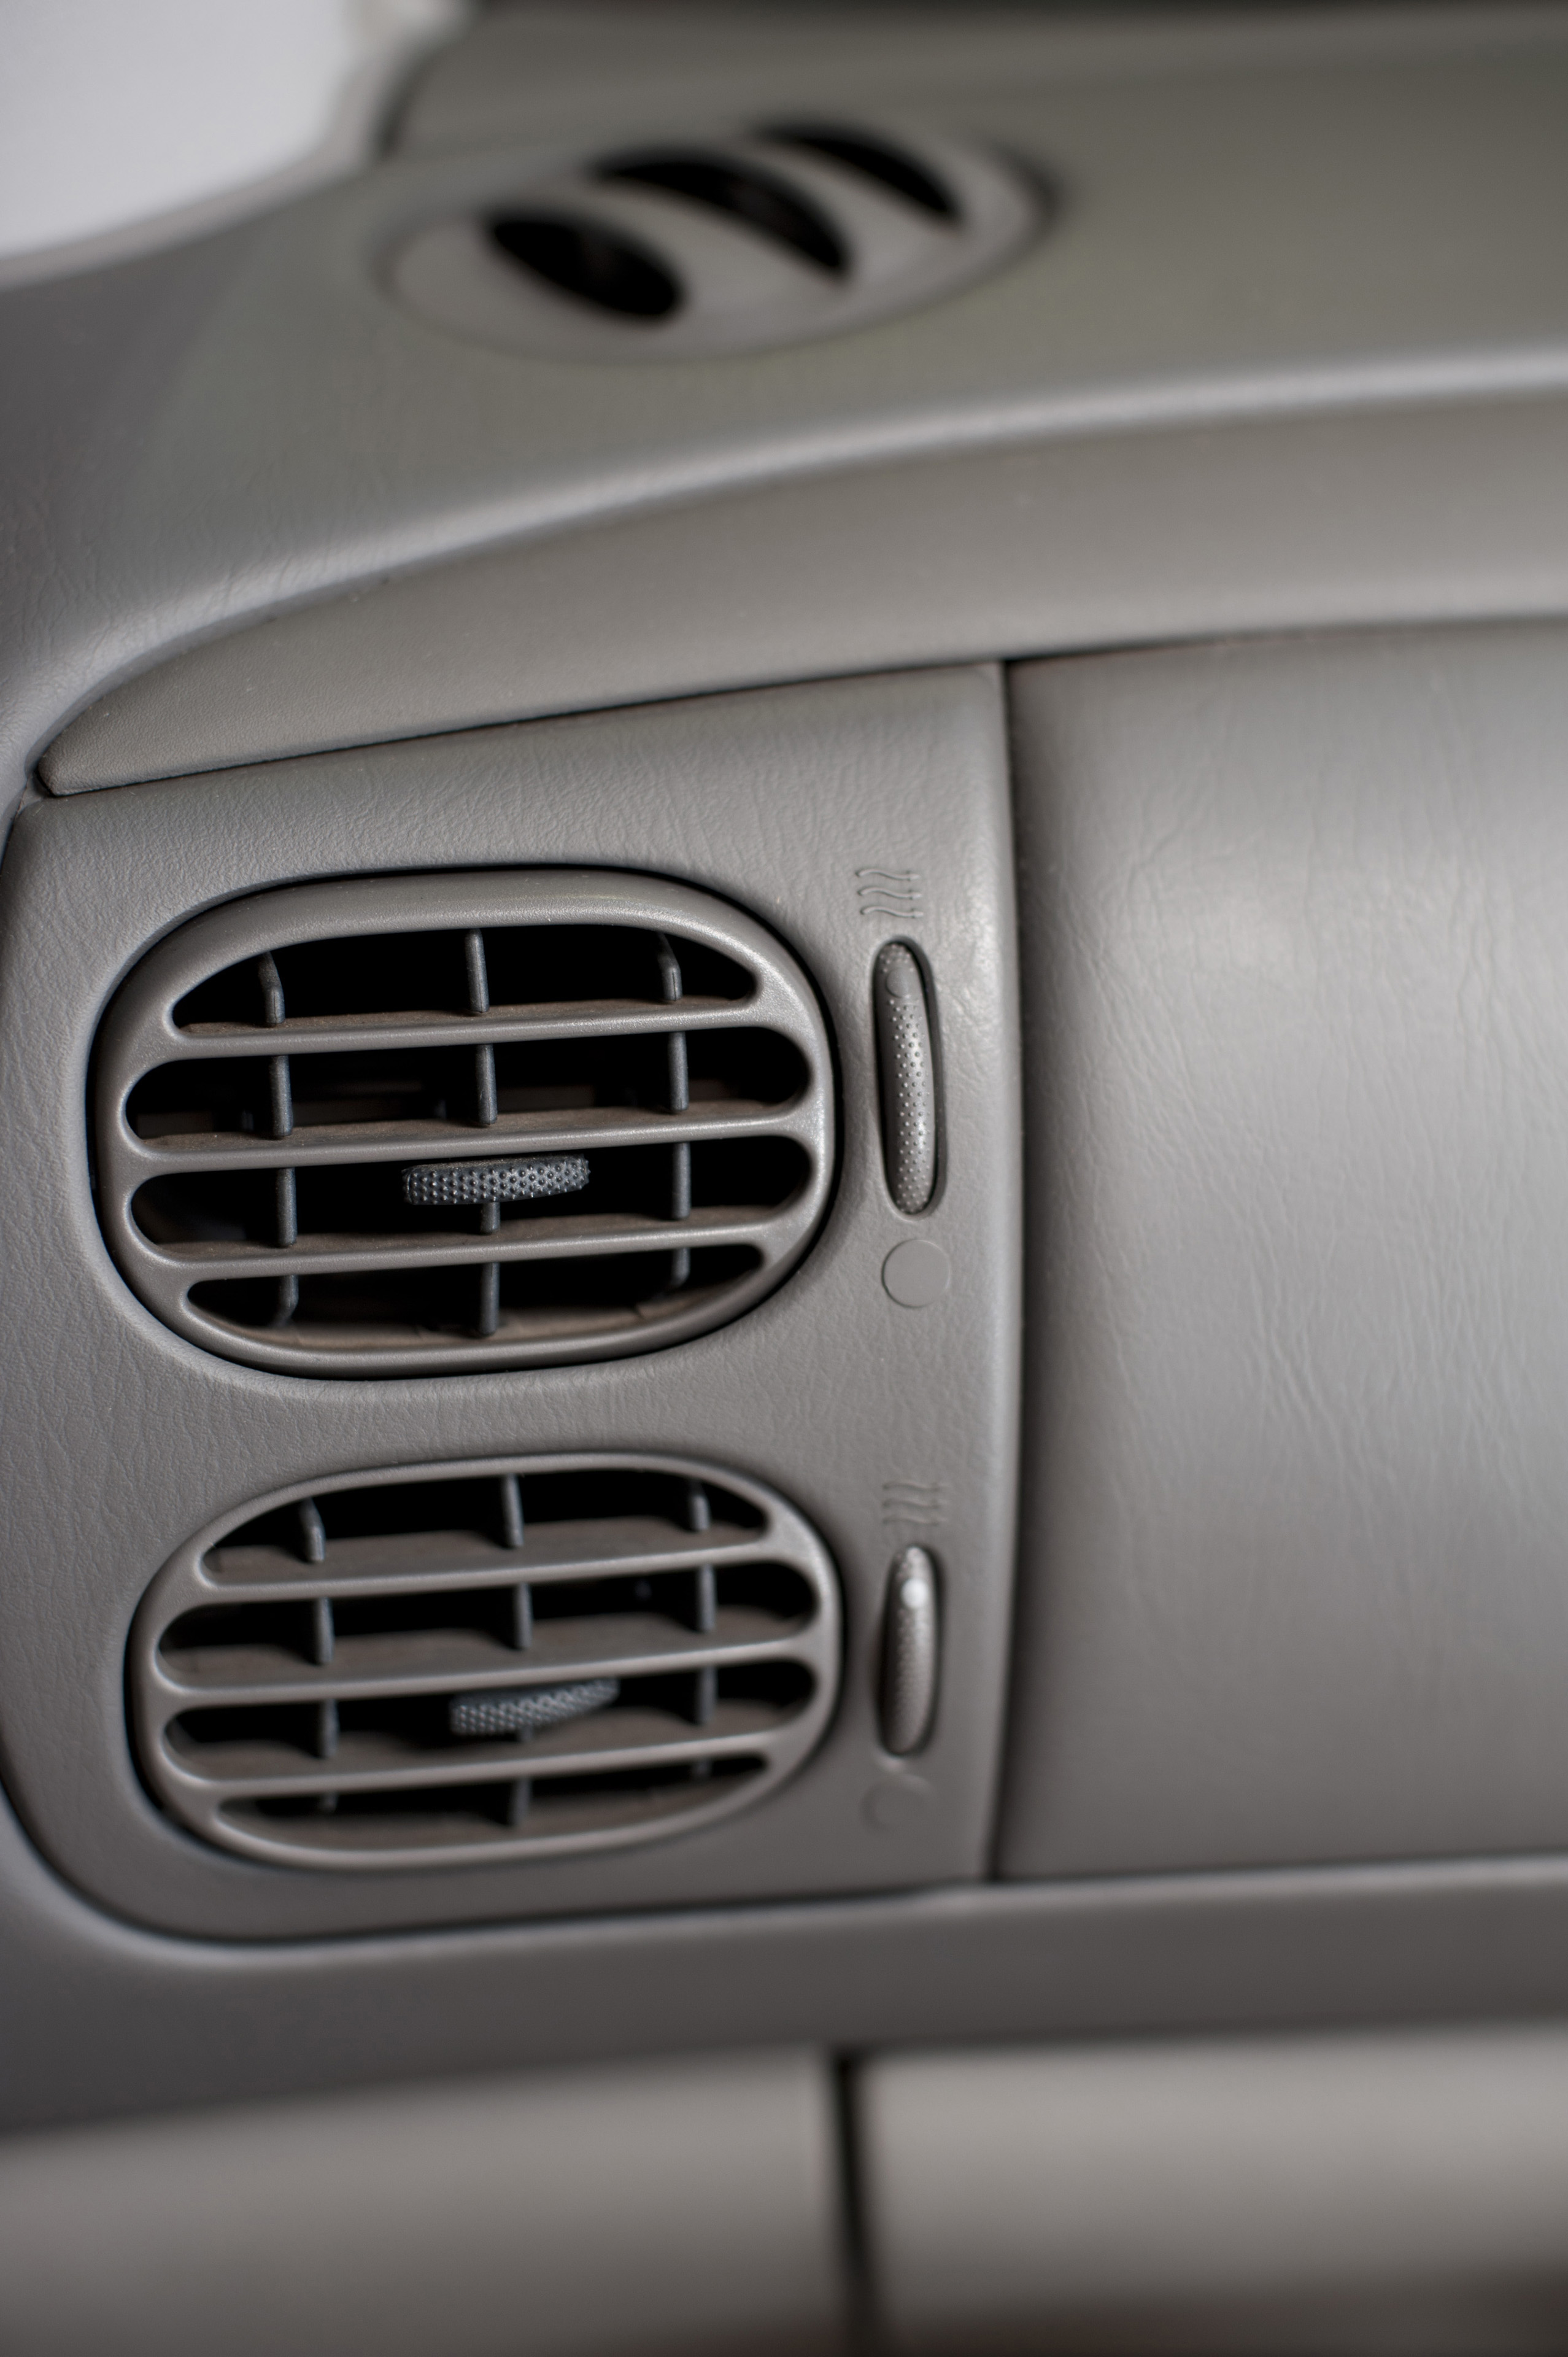 Close up of two adjustable air vents on a car dashboard for air flow when using the air conditioner or heater, or for fresh air from the exterior